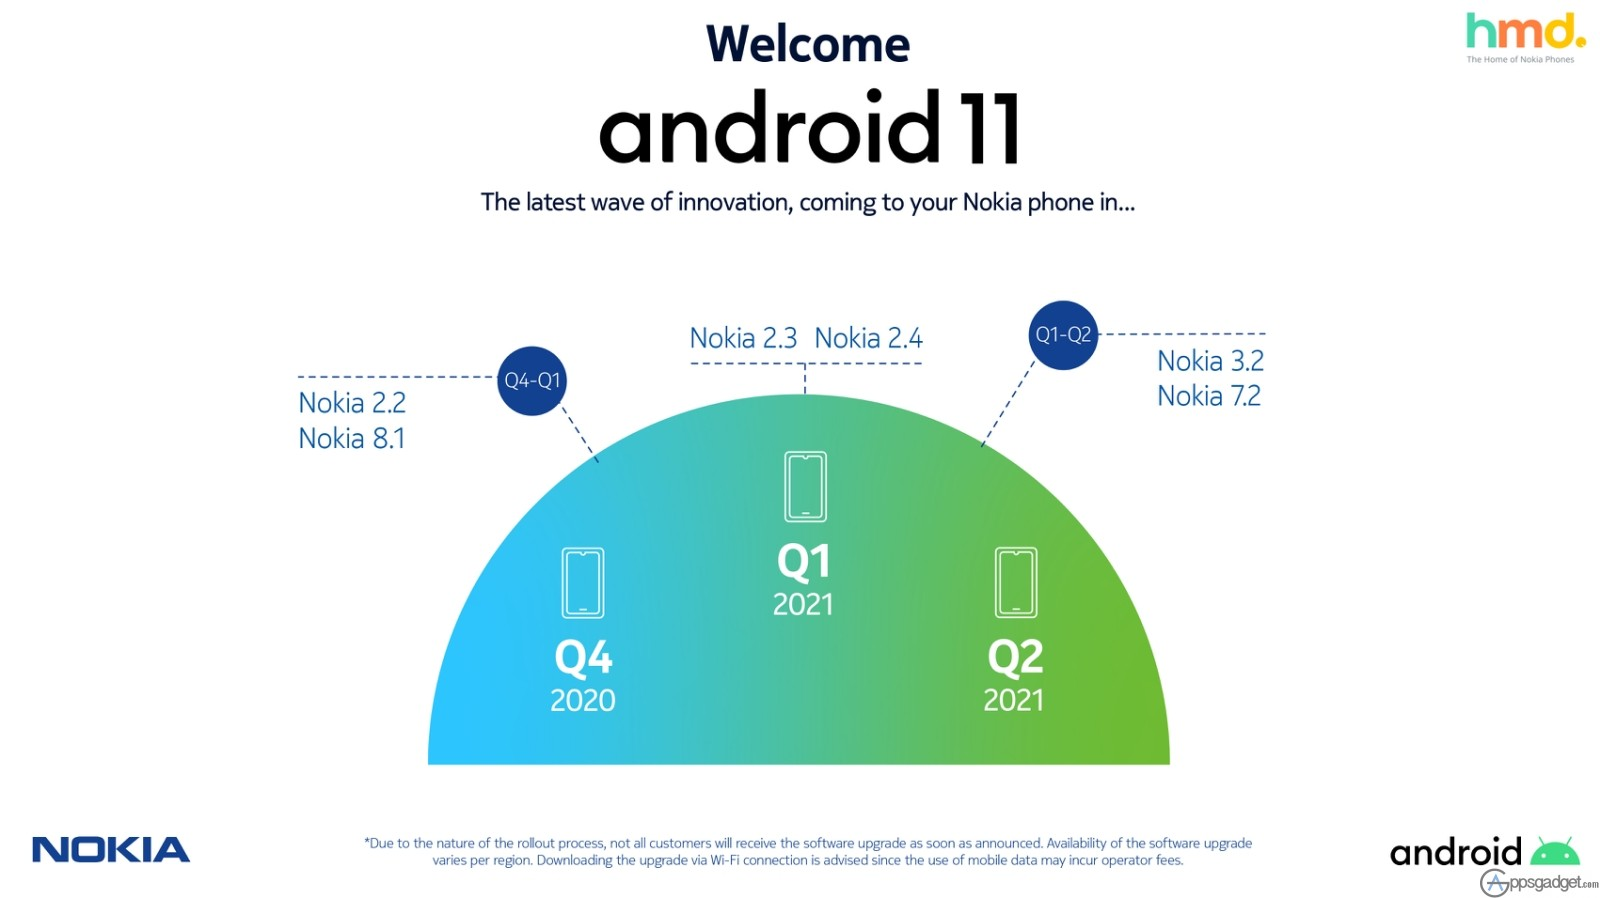 HMD Global Nokia Smartphones Remains Top in AndroidTM of both Security and Android OS Upgrades